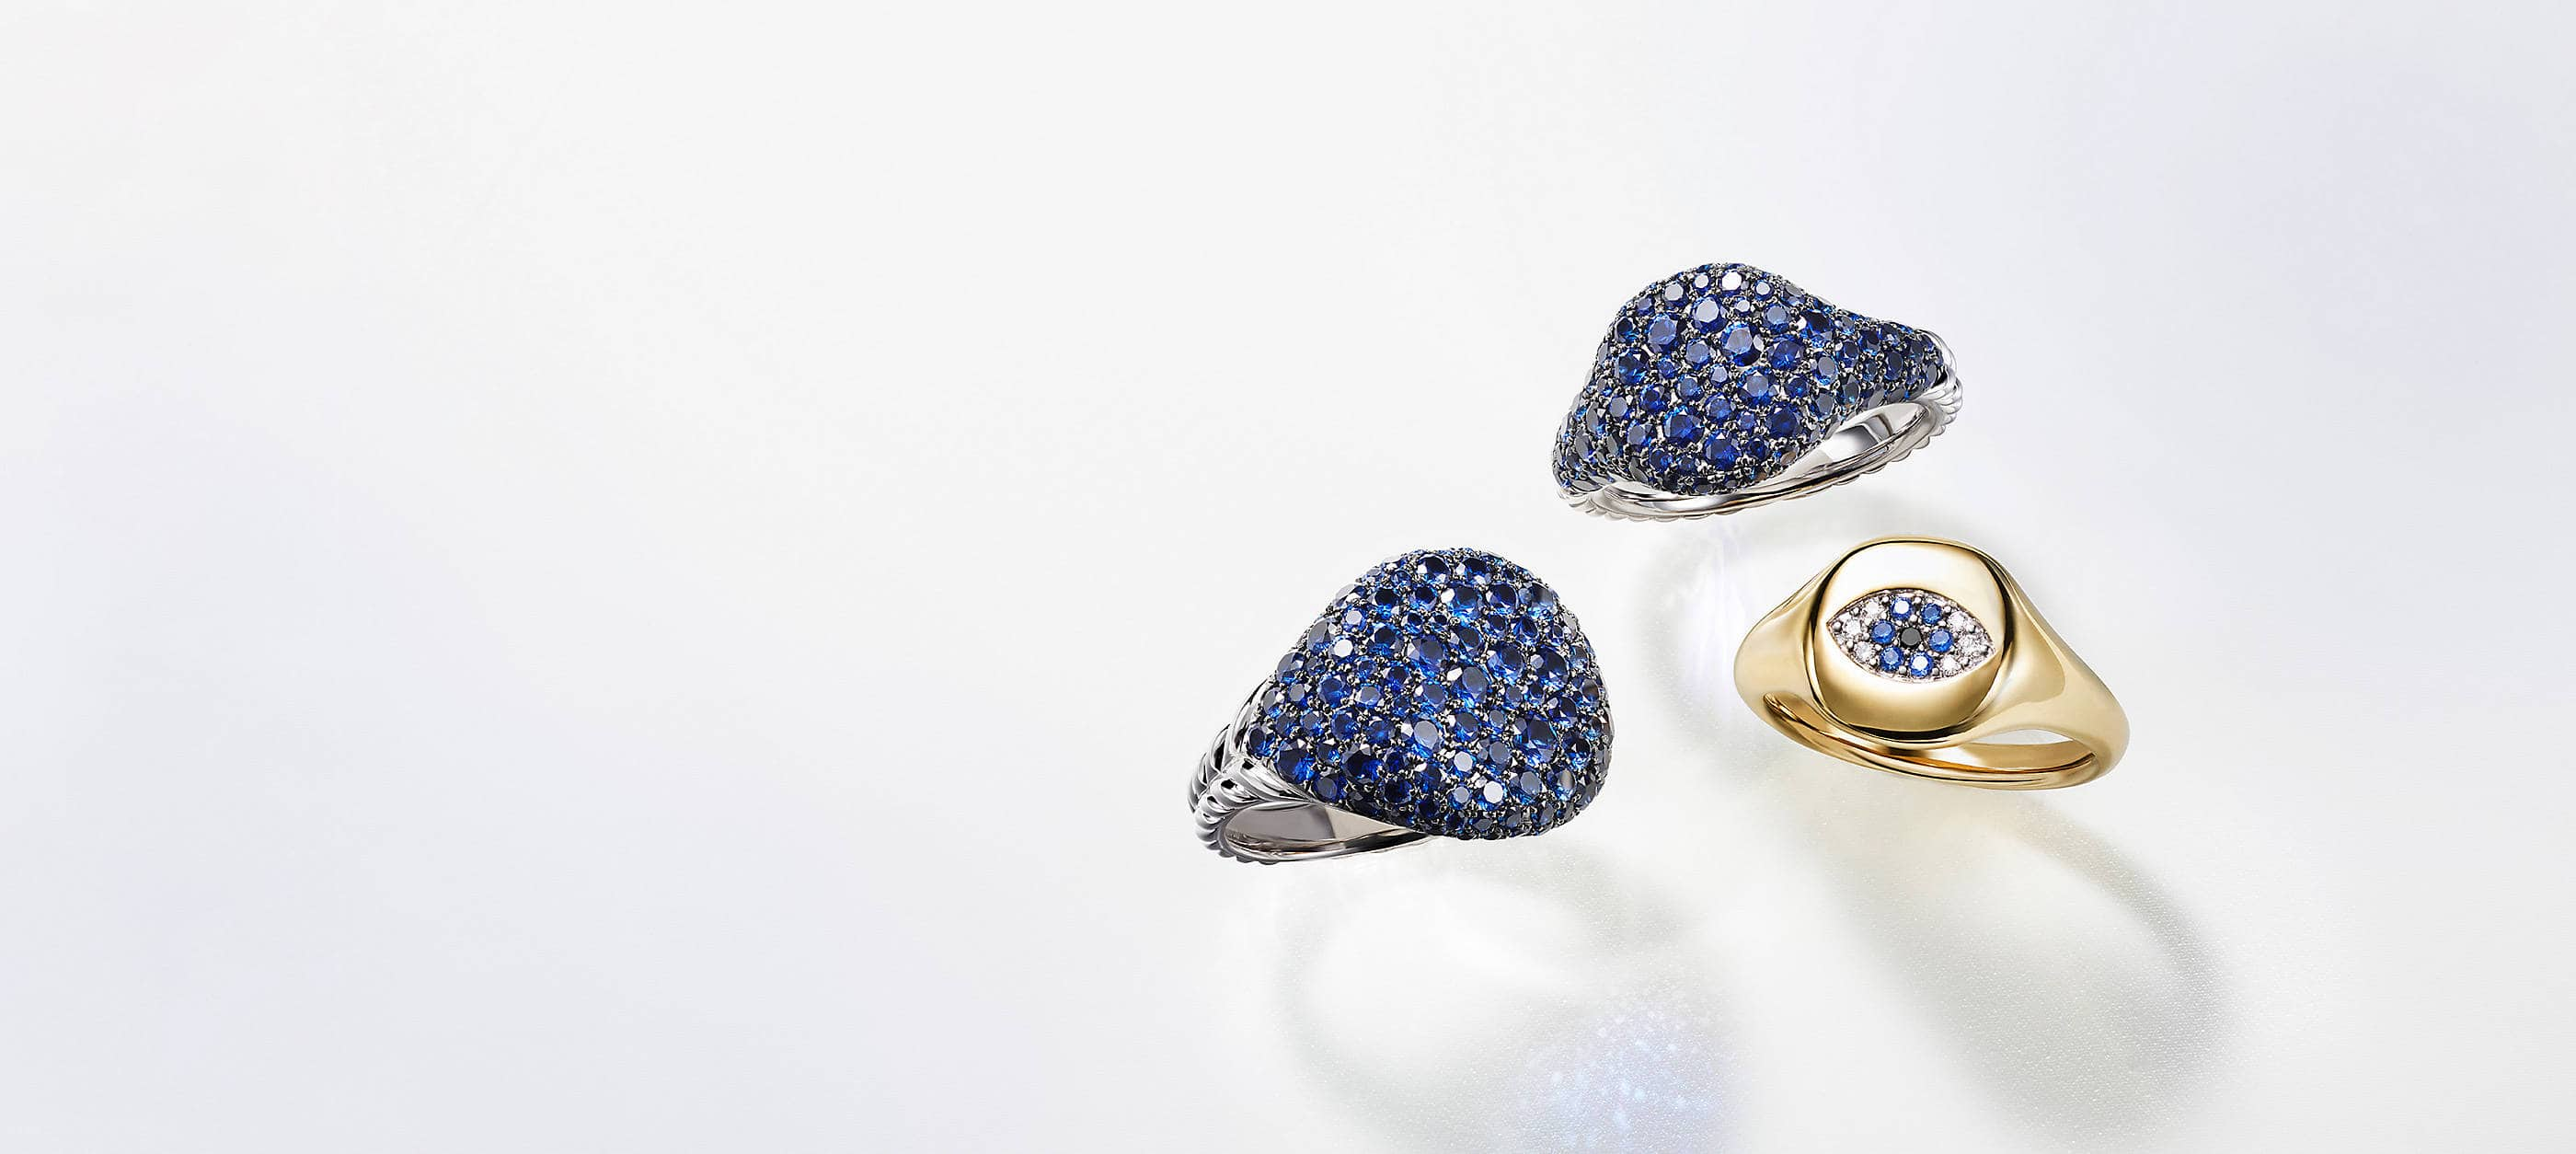 Three David Yurman pinky rings placed atop a white background with soft shadows. Two rings are crafted from 18K white gold with pavé blue sapphires. The final ring is crafted from 18K yellow gold with pavé diamonds and blue sapphires set to look like an evil eye.